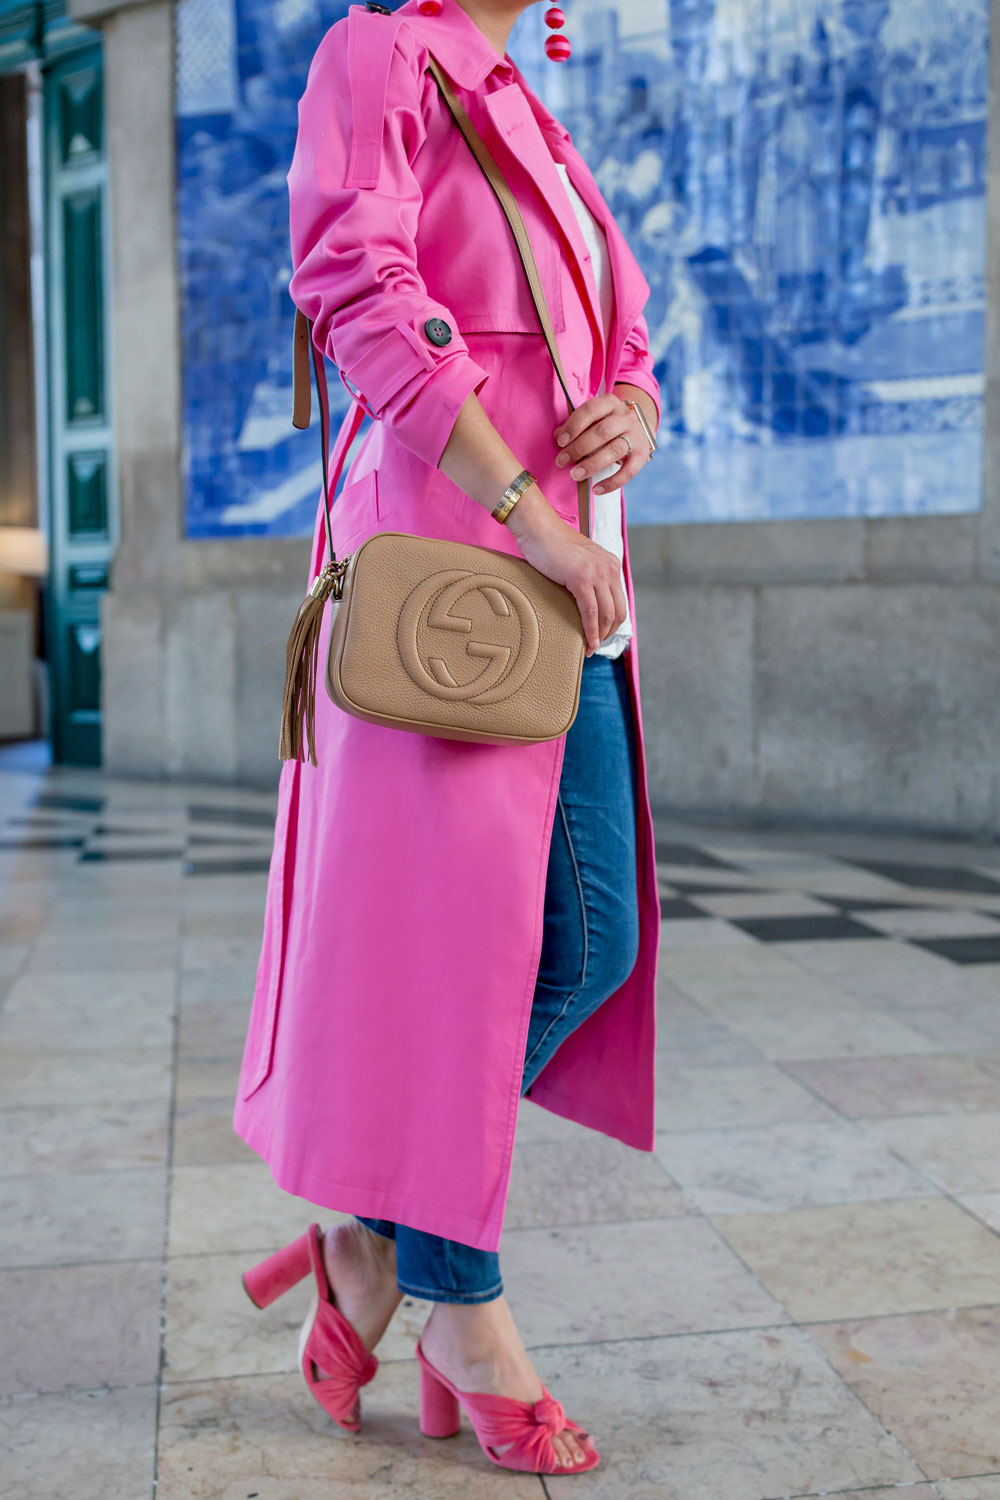 Asos Bright Pink Trench Coat At The Porto Train Station